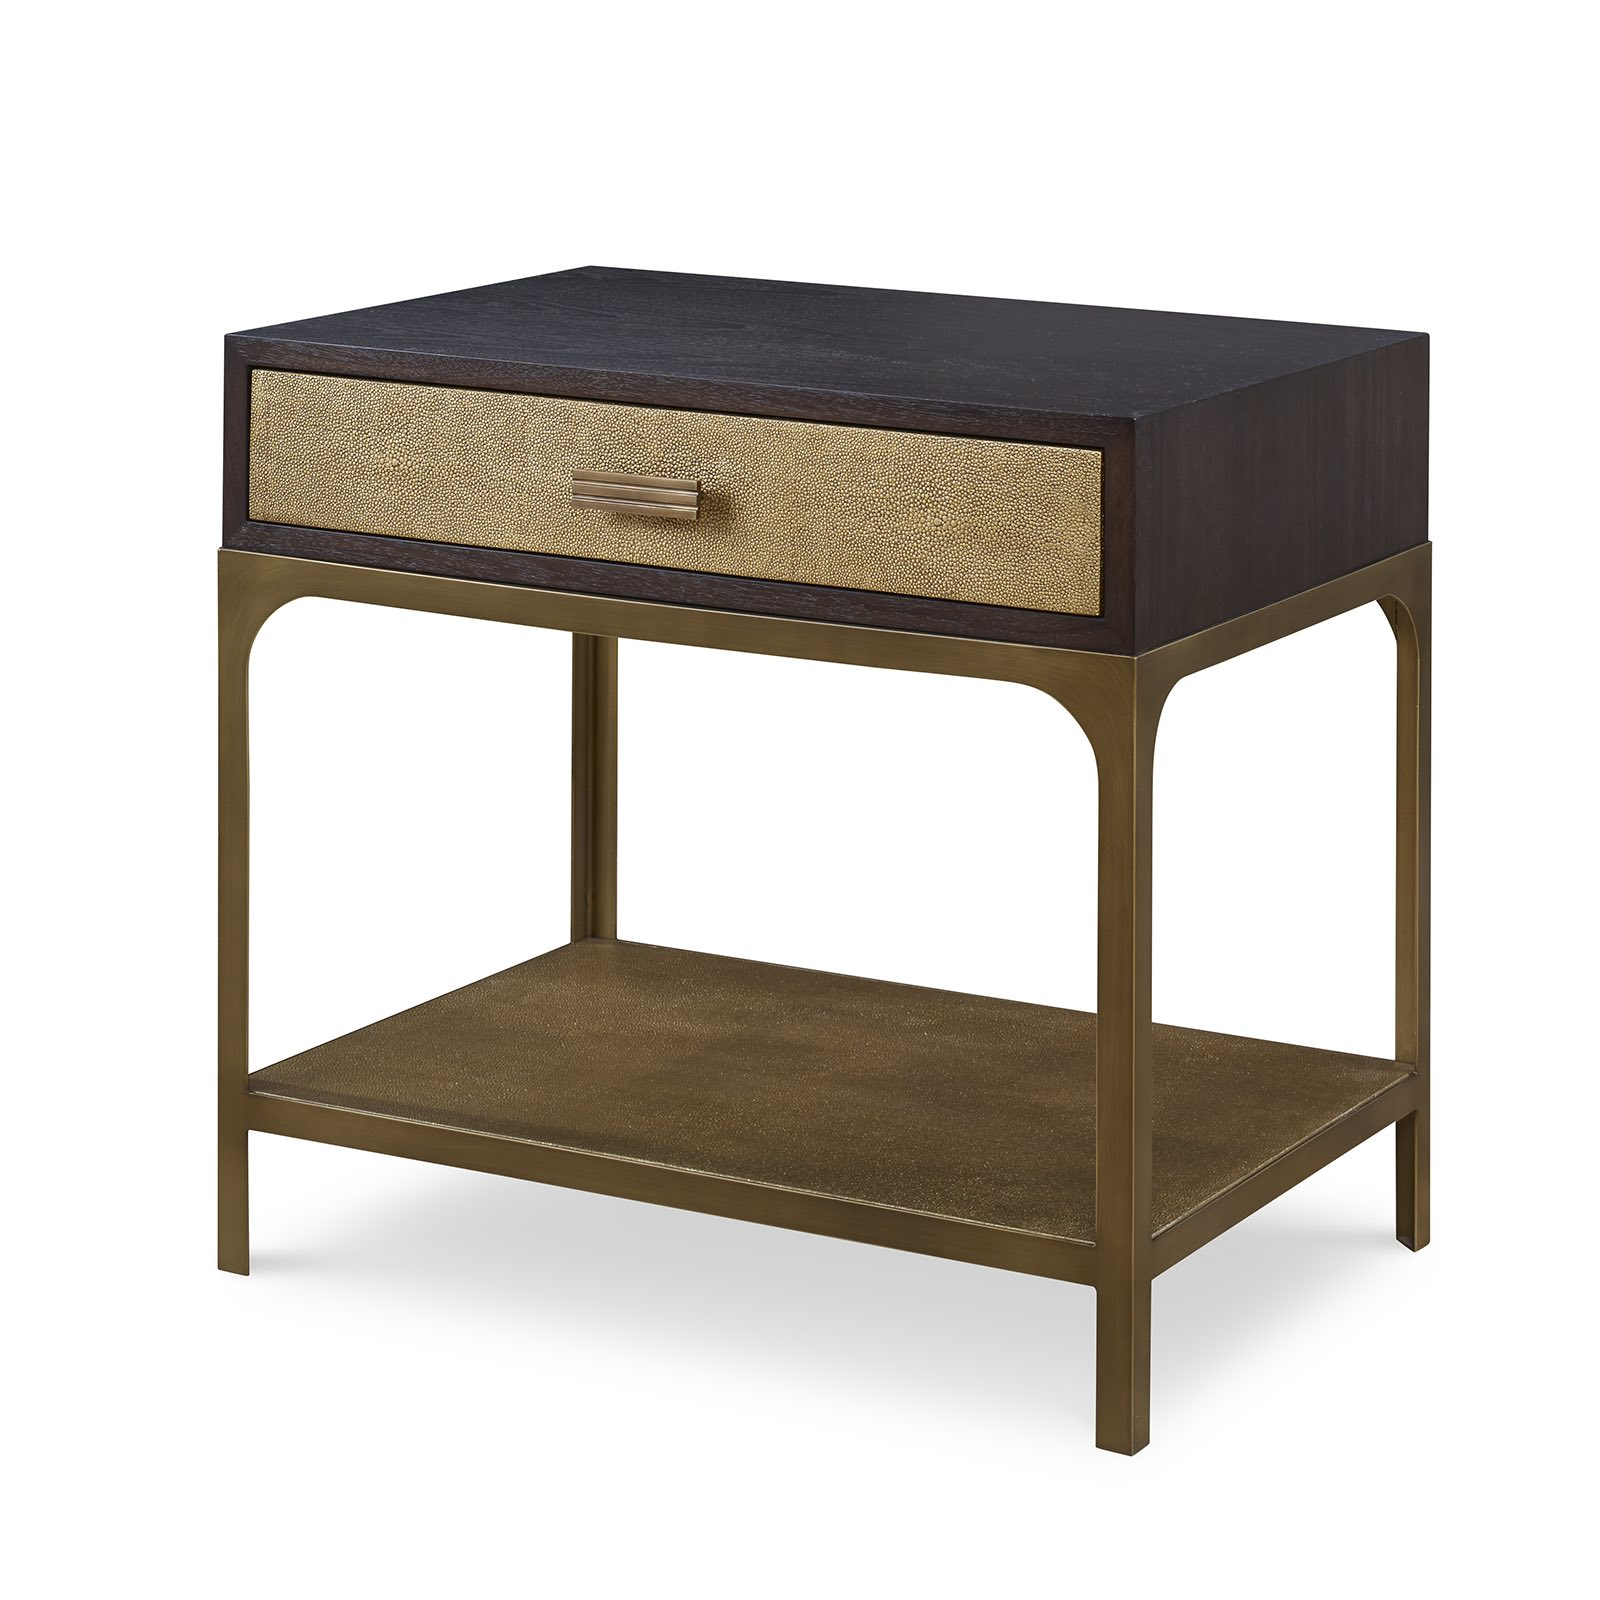 Mr Brown London Holmby bedside table